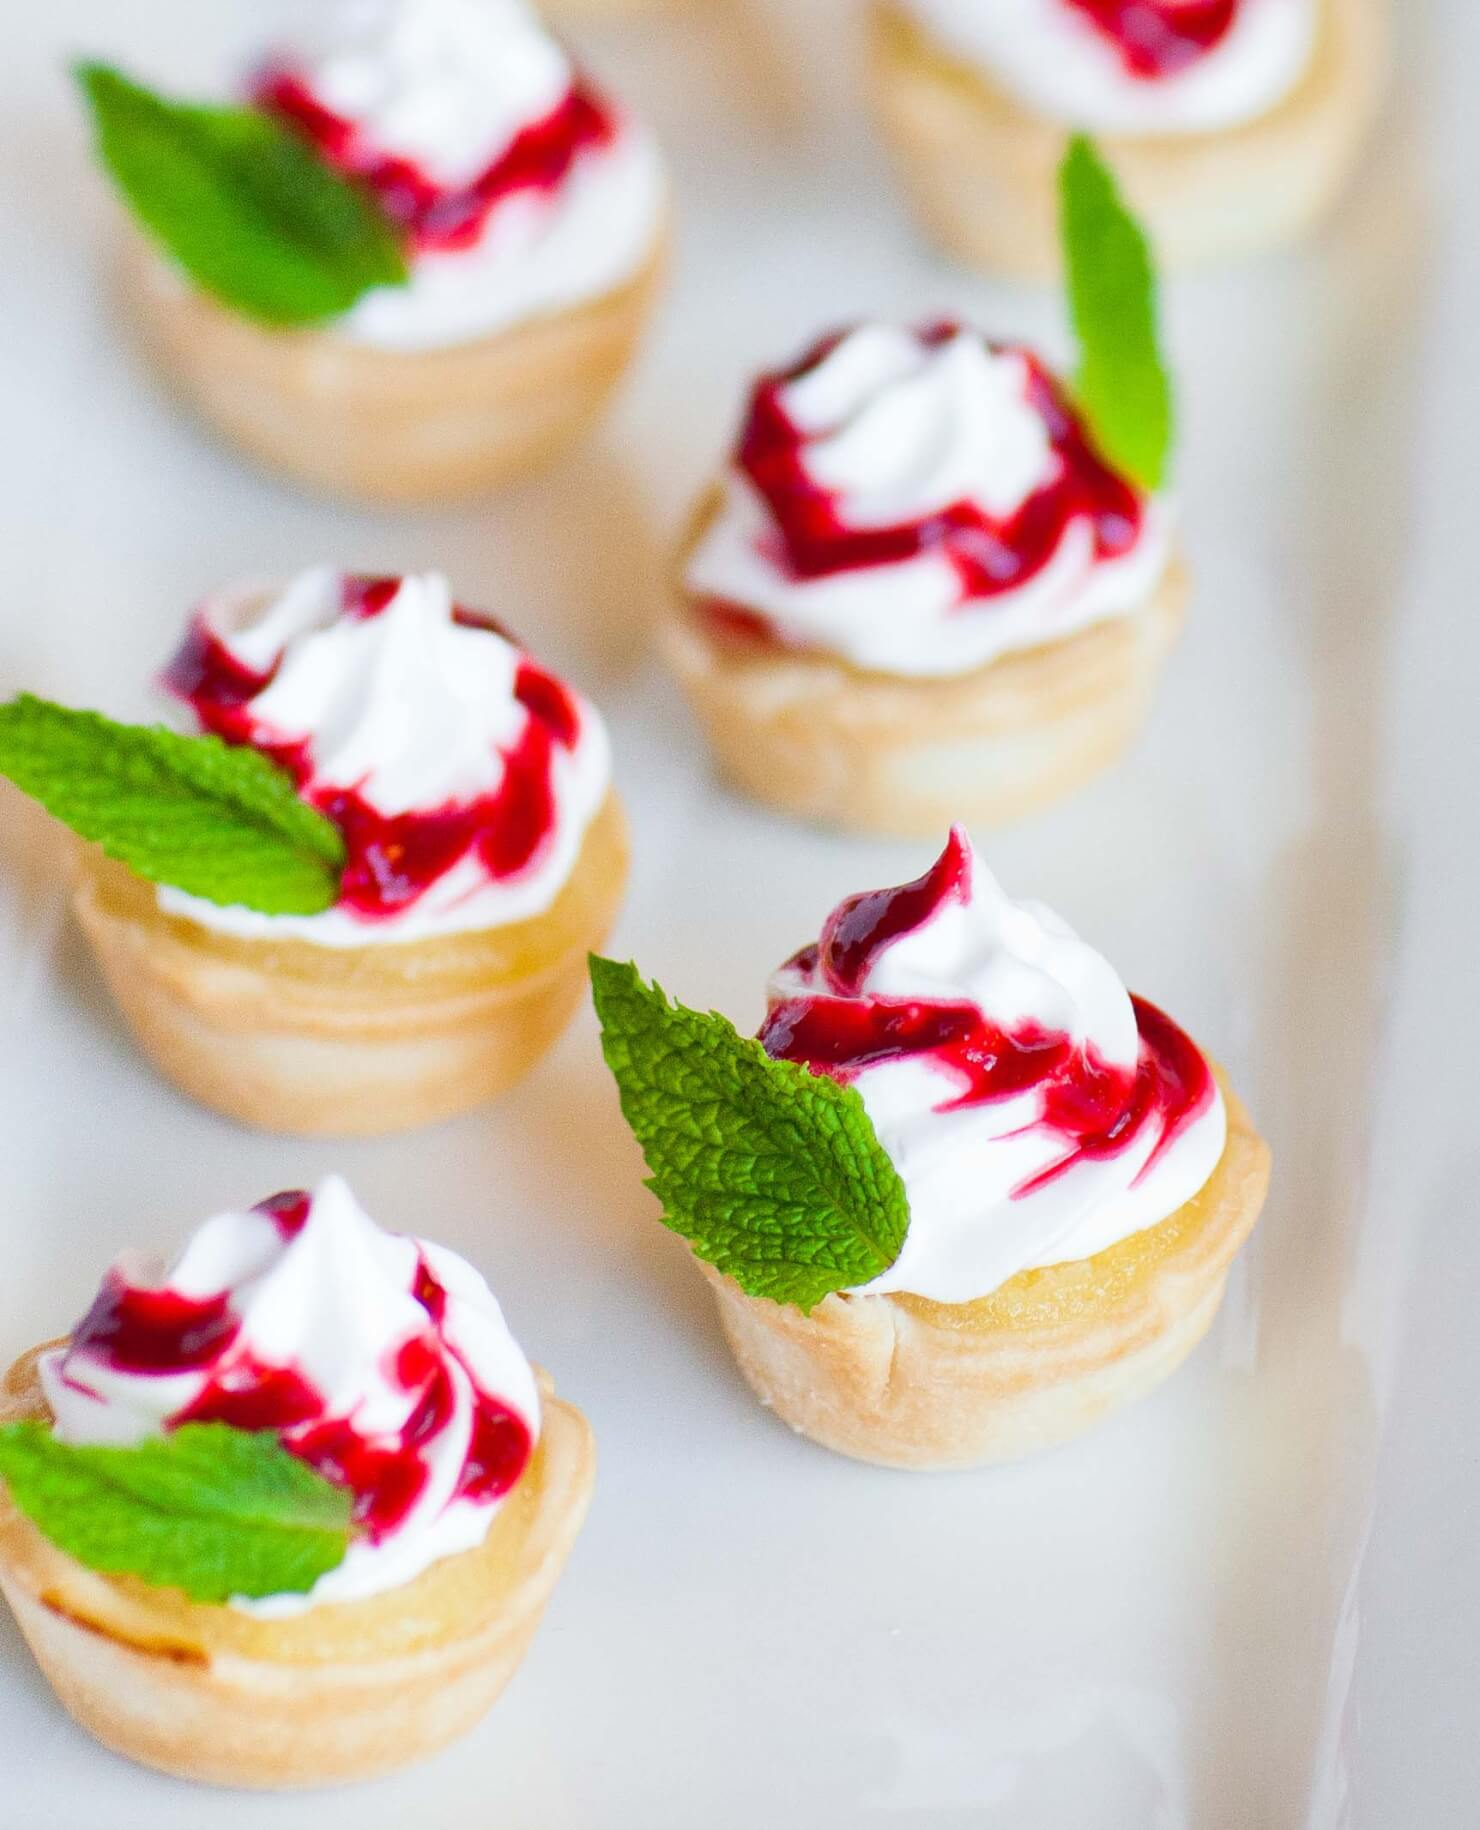 Lemon Curd and Raspberry Meringue Mini Tarts